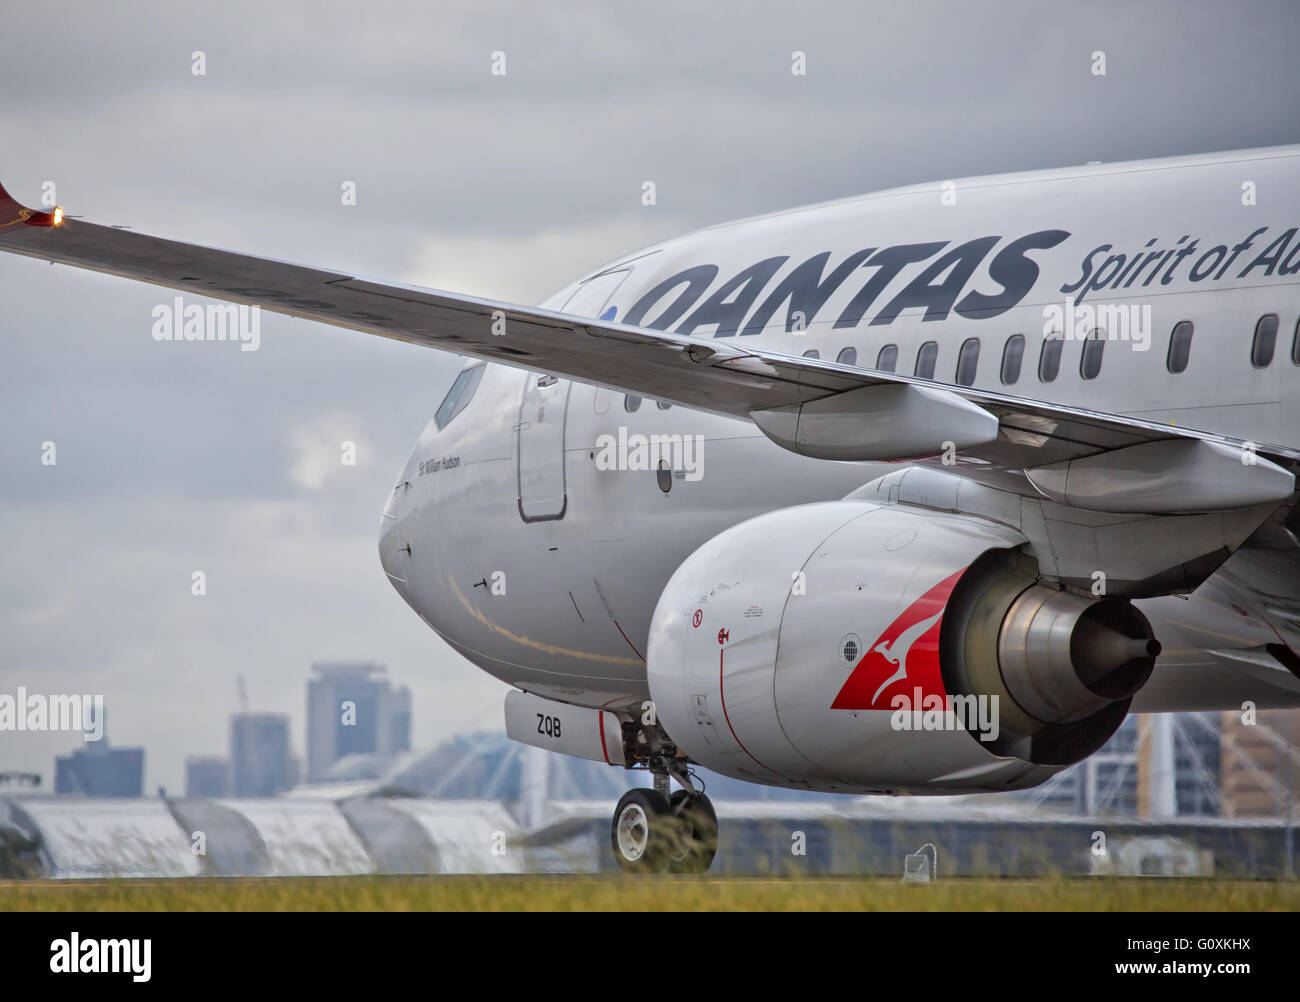 Close-up of a QANTAS Boeing 737 taxiing. Unusual angle. - Stock Image